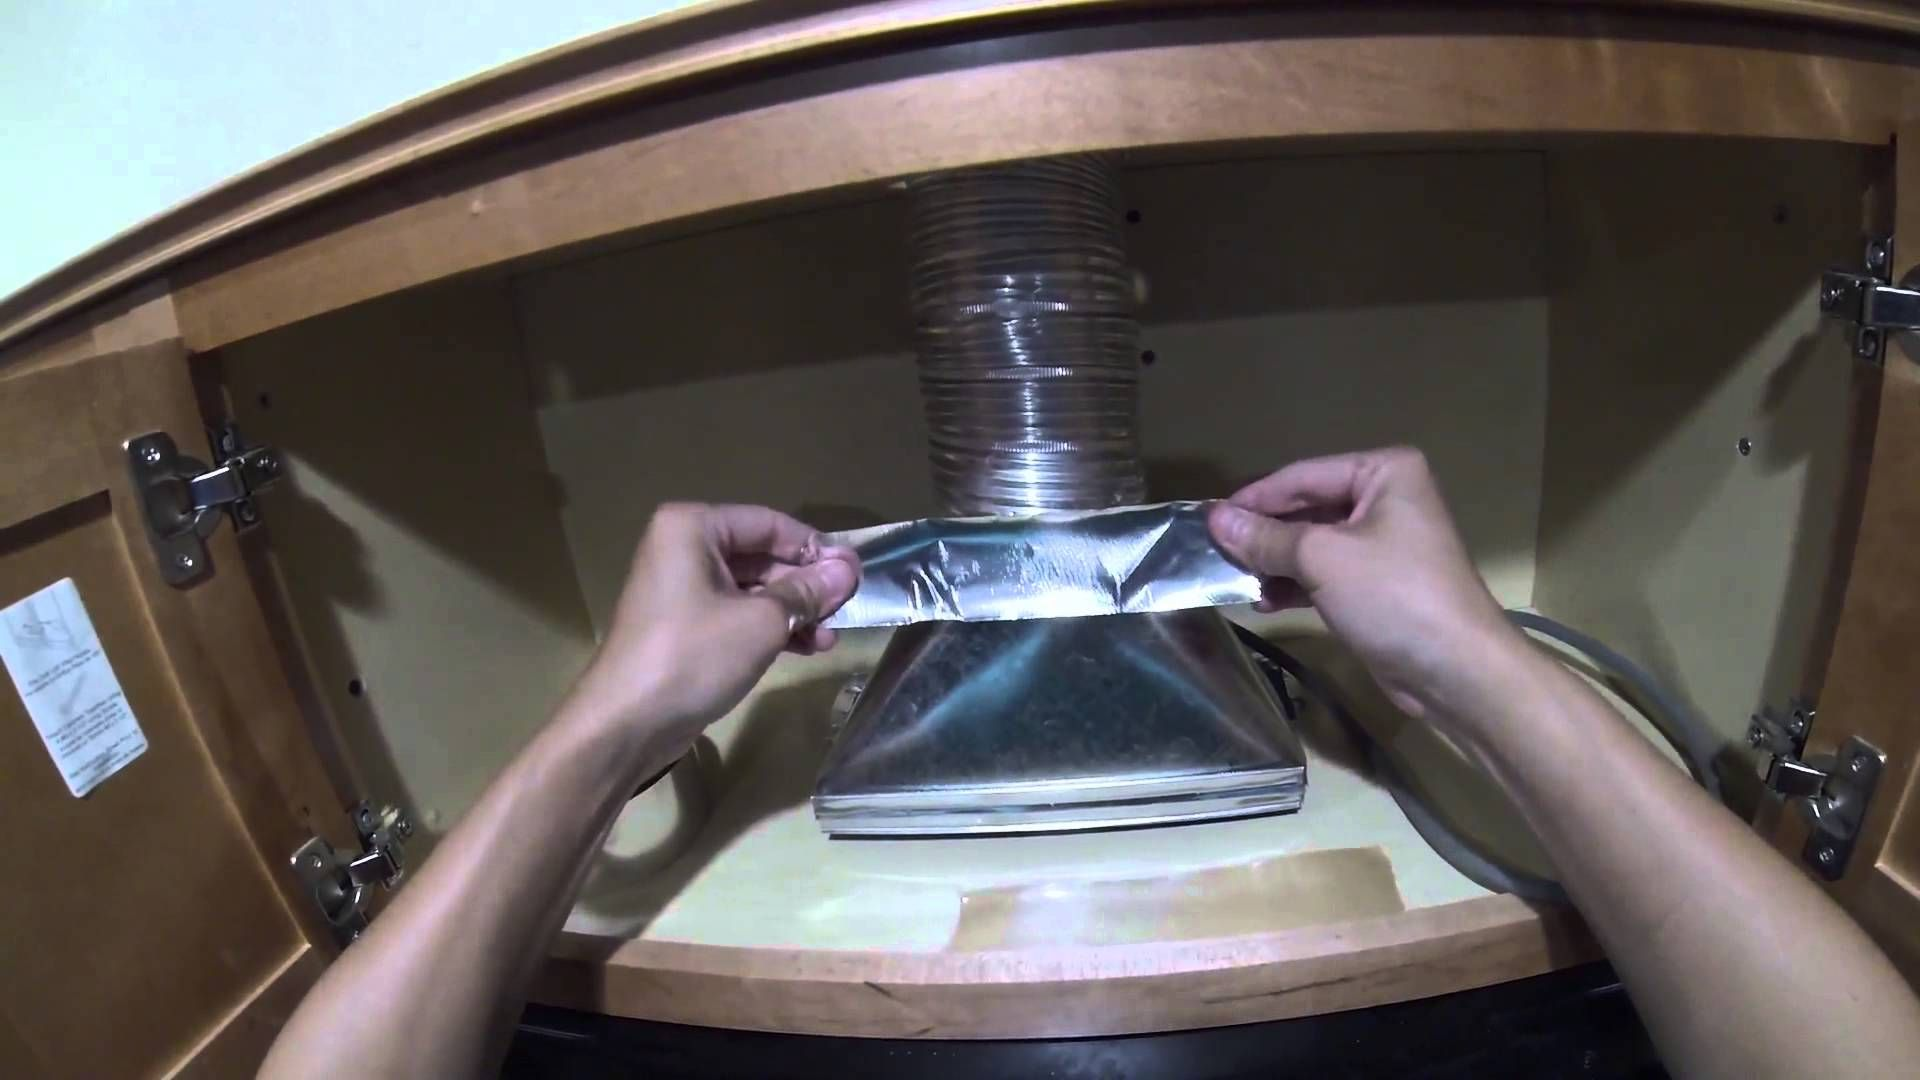 How To Install A Microwave Hood With Exhaust Fan Diy Microwave